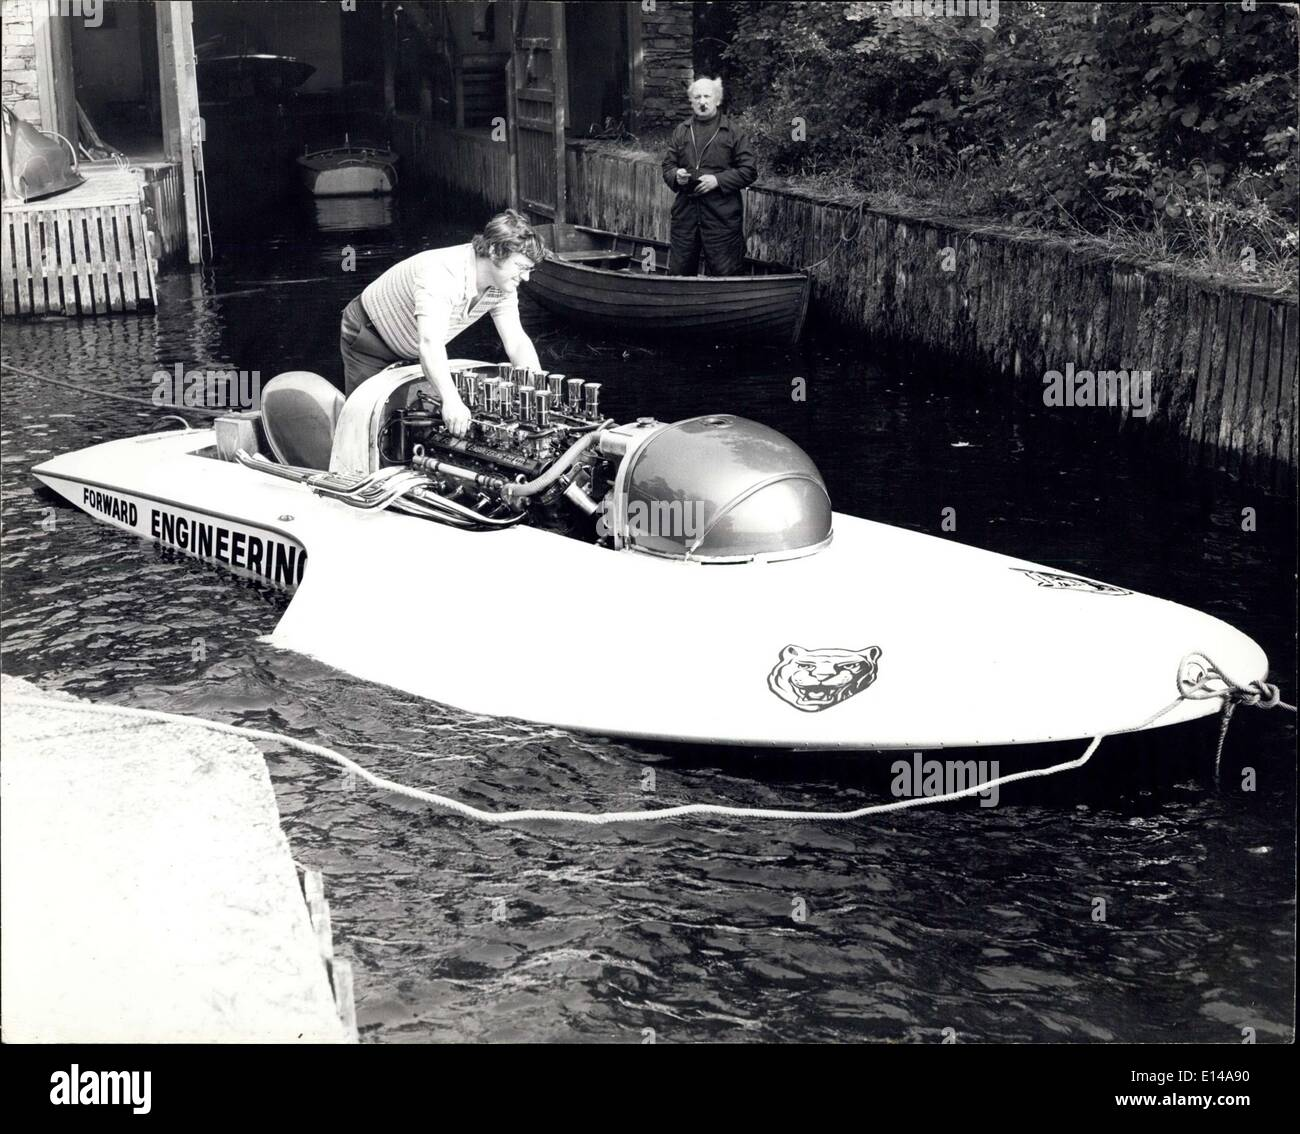 Apr. 17, 2012 - 30 Year Old Manchester Businessman Sets Out To Break World Water Speed Record.: Tony Fahley, a 30 year old business man from Manchester, is preparing to make an attempt on the World R6 water speed record, which at present stands at 120.45.mph. He will also be going for the world, one and two hour endurance records. All the attempts will take place on Lake Windermare, during this month. Tony's hydroplane, Miss Windemere V, is powered by a Jaguar XJ5.3 engine which, it is hoped, will reach up to speeds of between 150 and 175 m.p - Stock Image